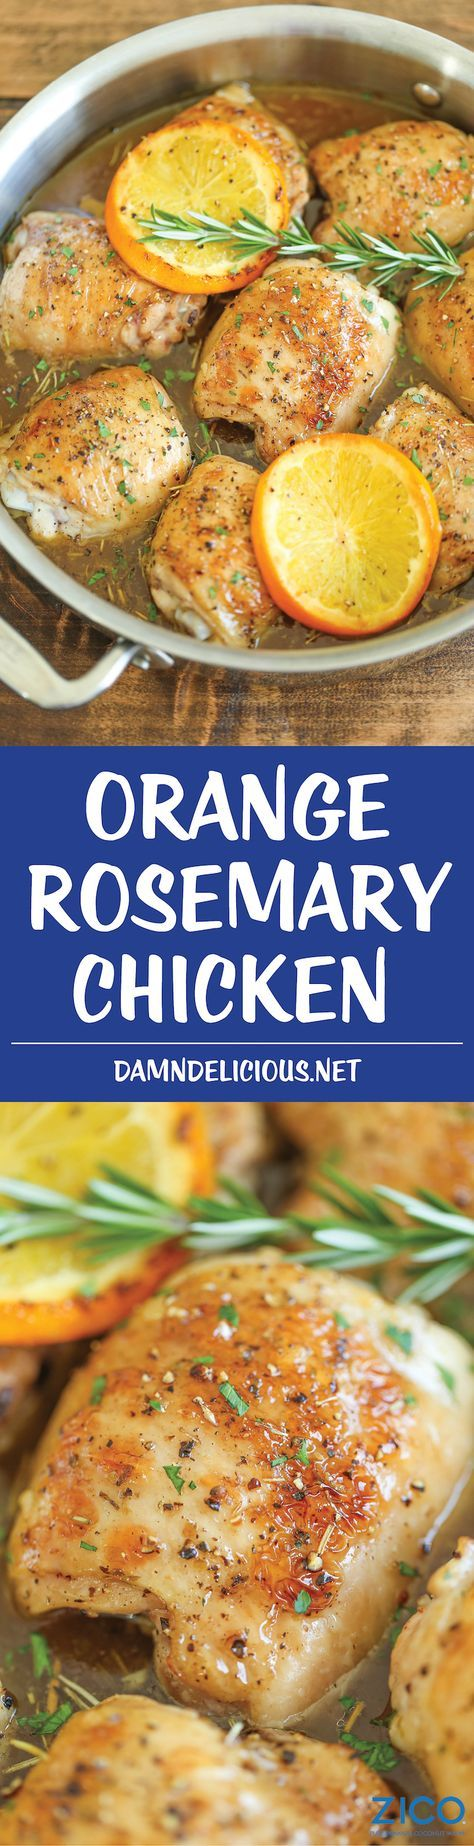 Orange Rosemary Chicken | Recipe | The o'jays, Rosemary chicken and ...